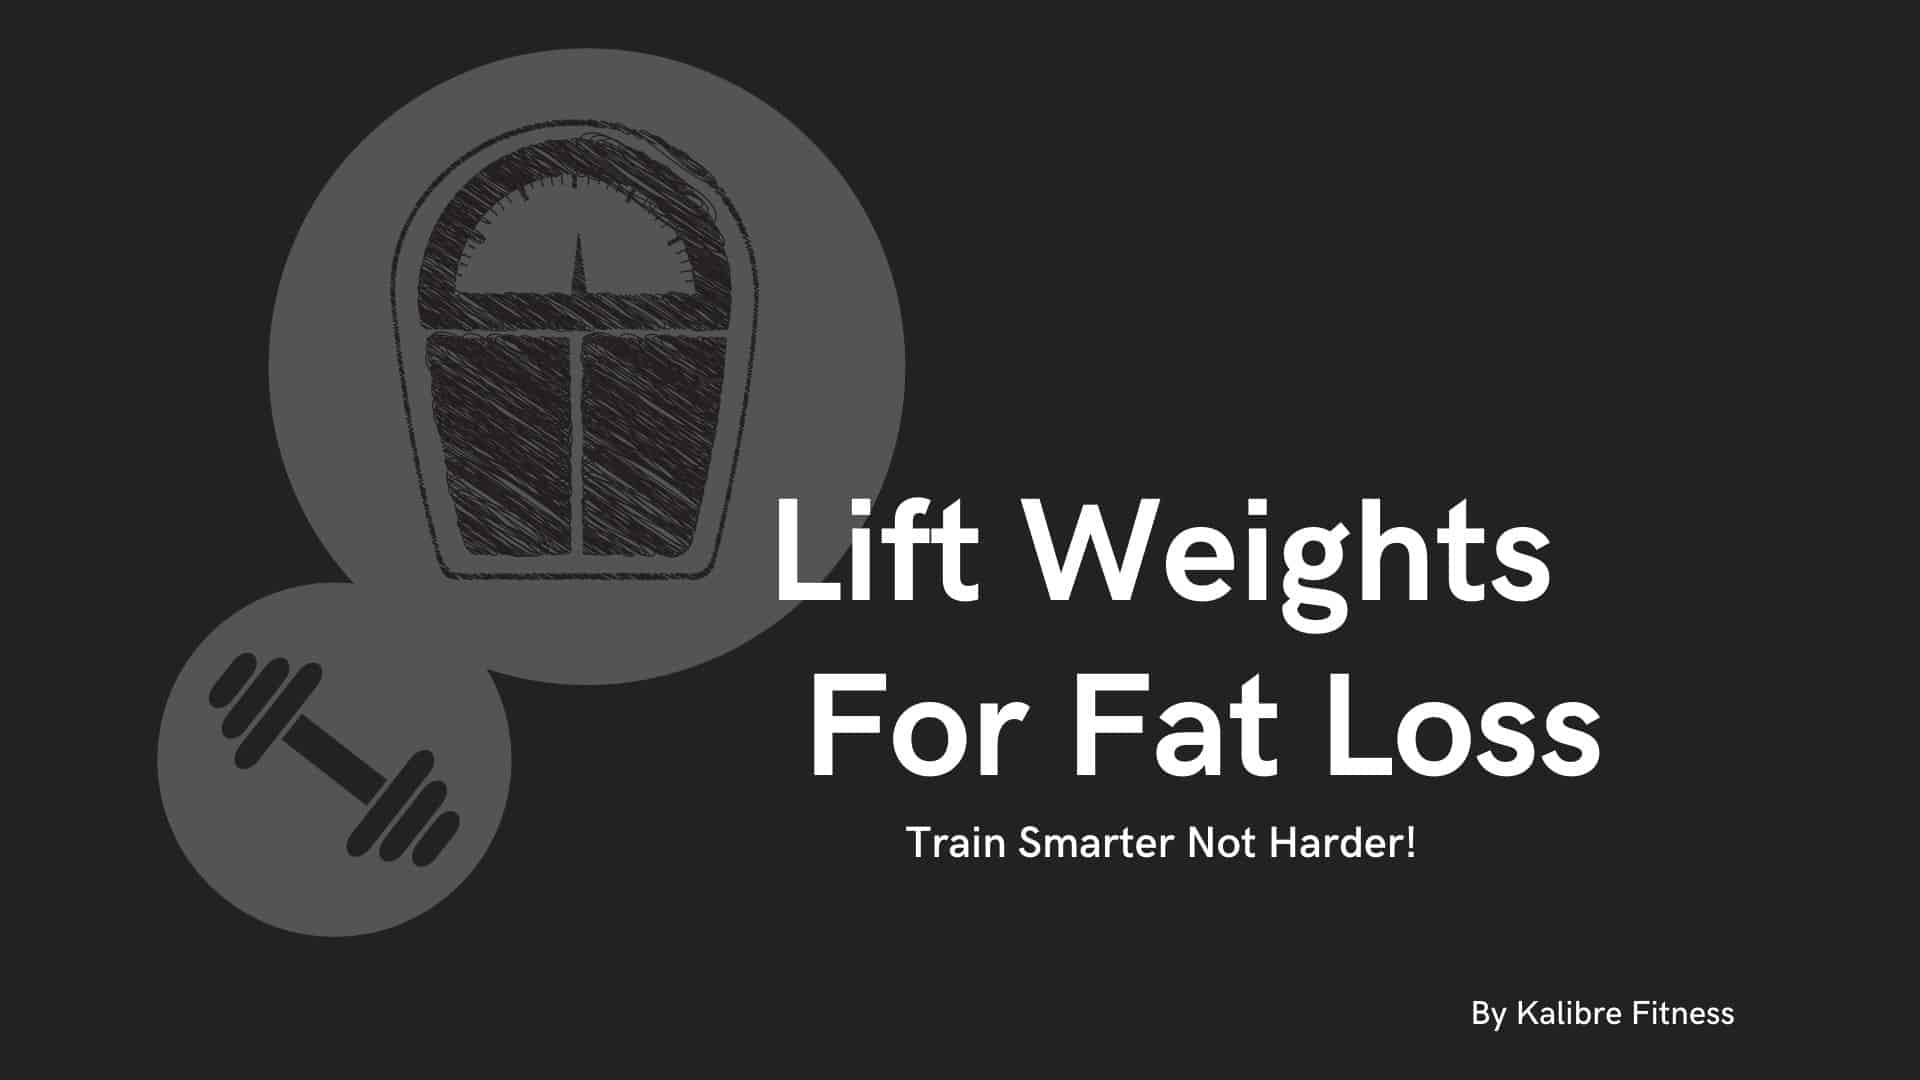 Lift Weights To Lose Fat